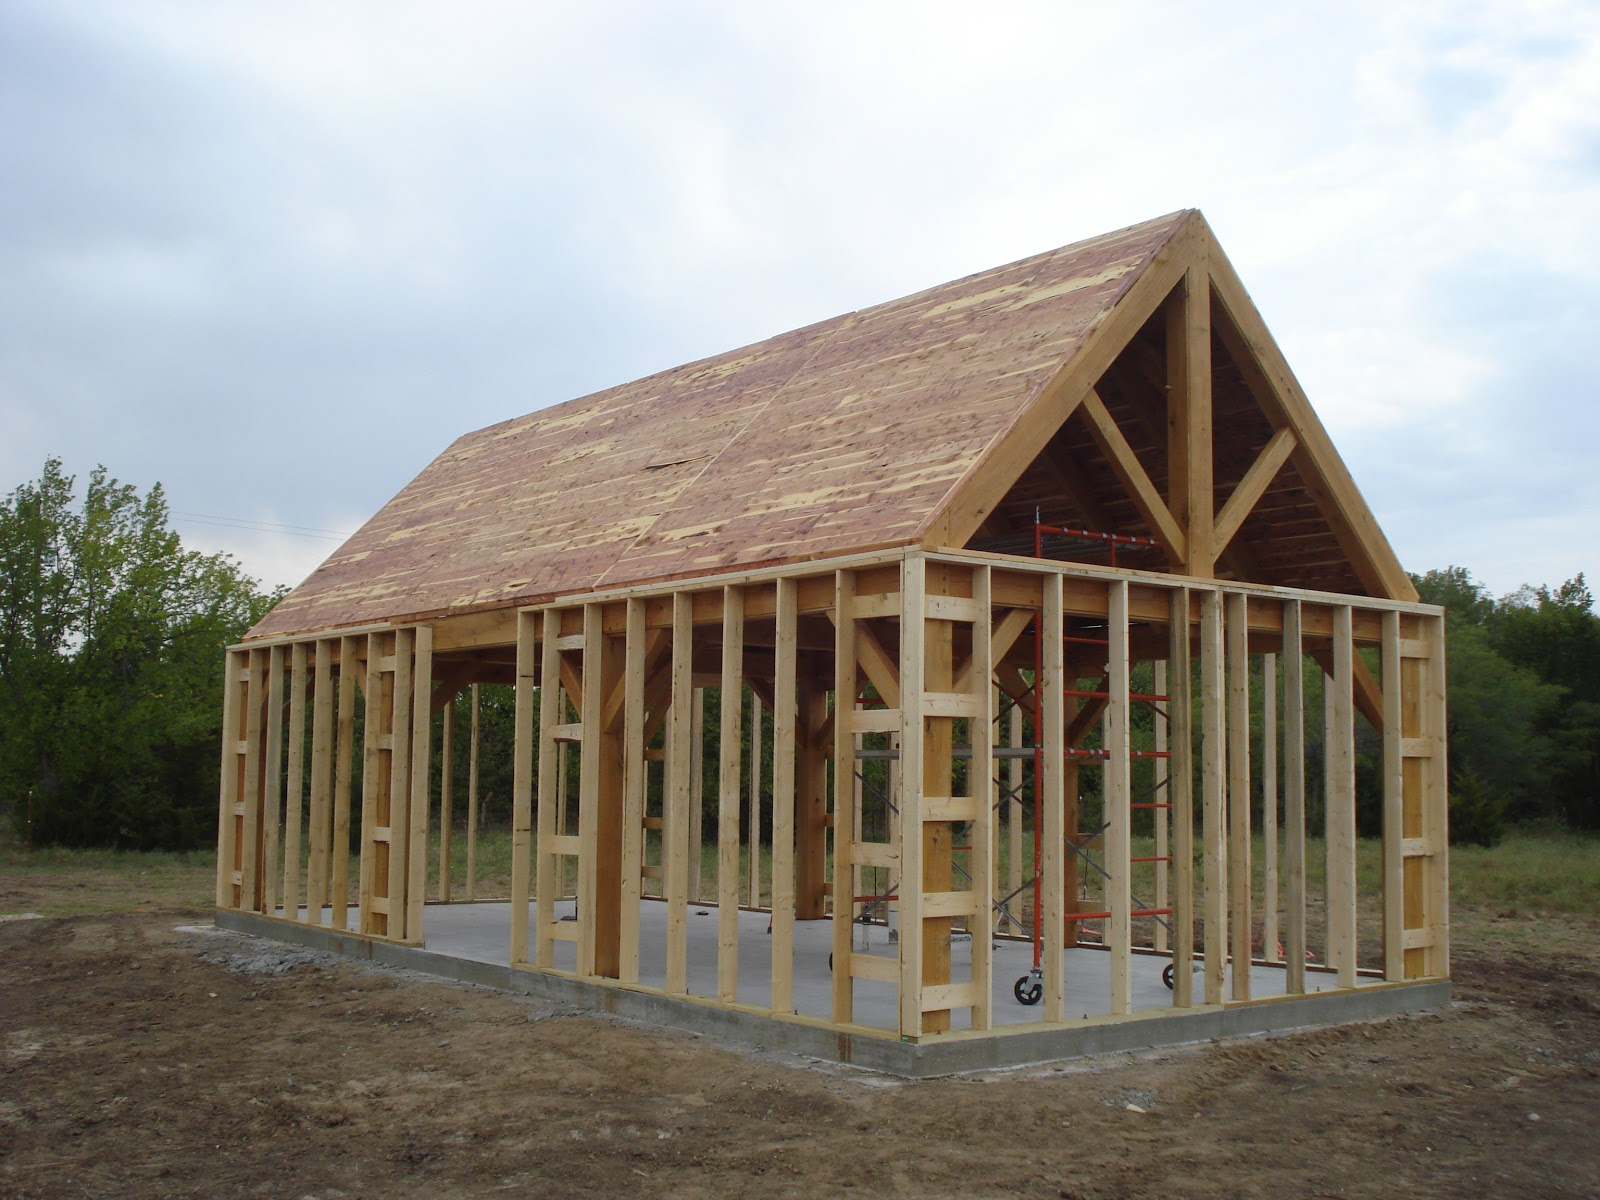 Elderslie cottage interior exterior wall and roof framing for Exterior framing